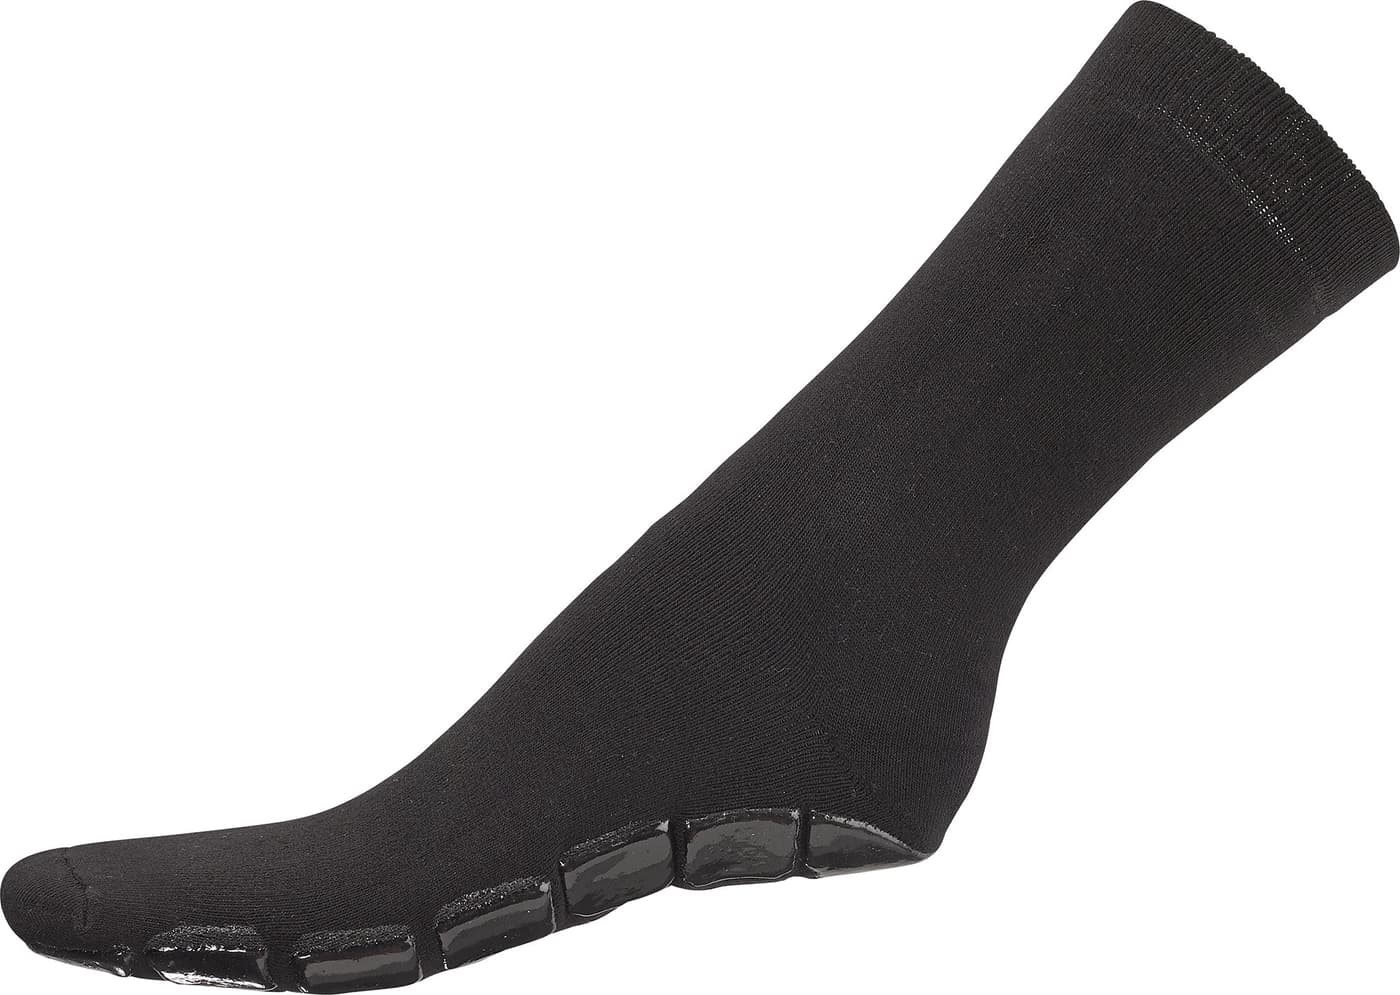 outlet store 580cf 3b2bf ABS Socks Black Antirutsch Socken